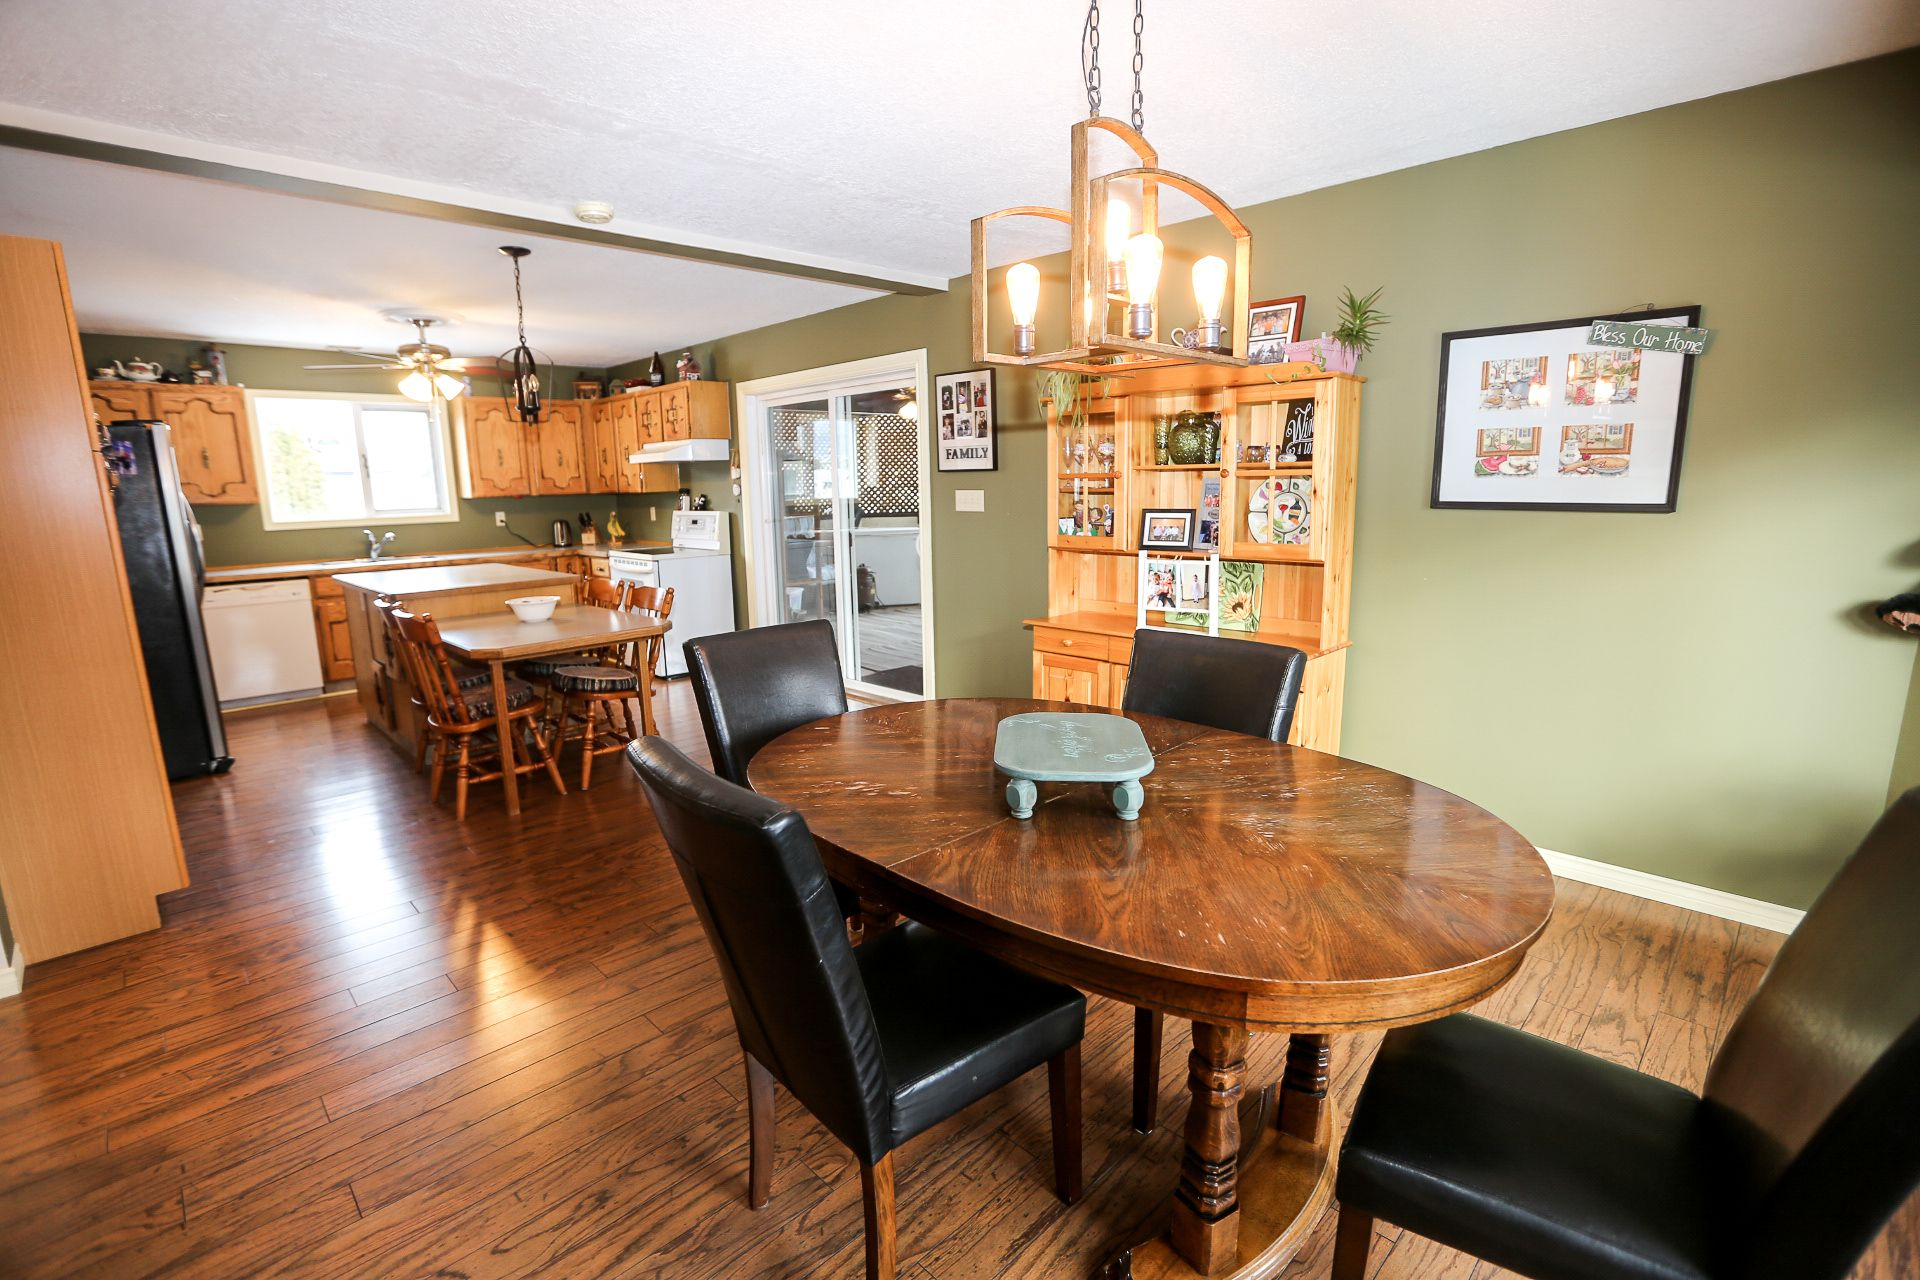 Photo 6: Photos: 434 ROBIN DRIVE: BARRIERE House for sale (NORTH EAST)  : MLS®# 160553